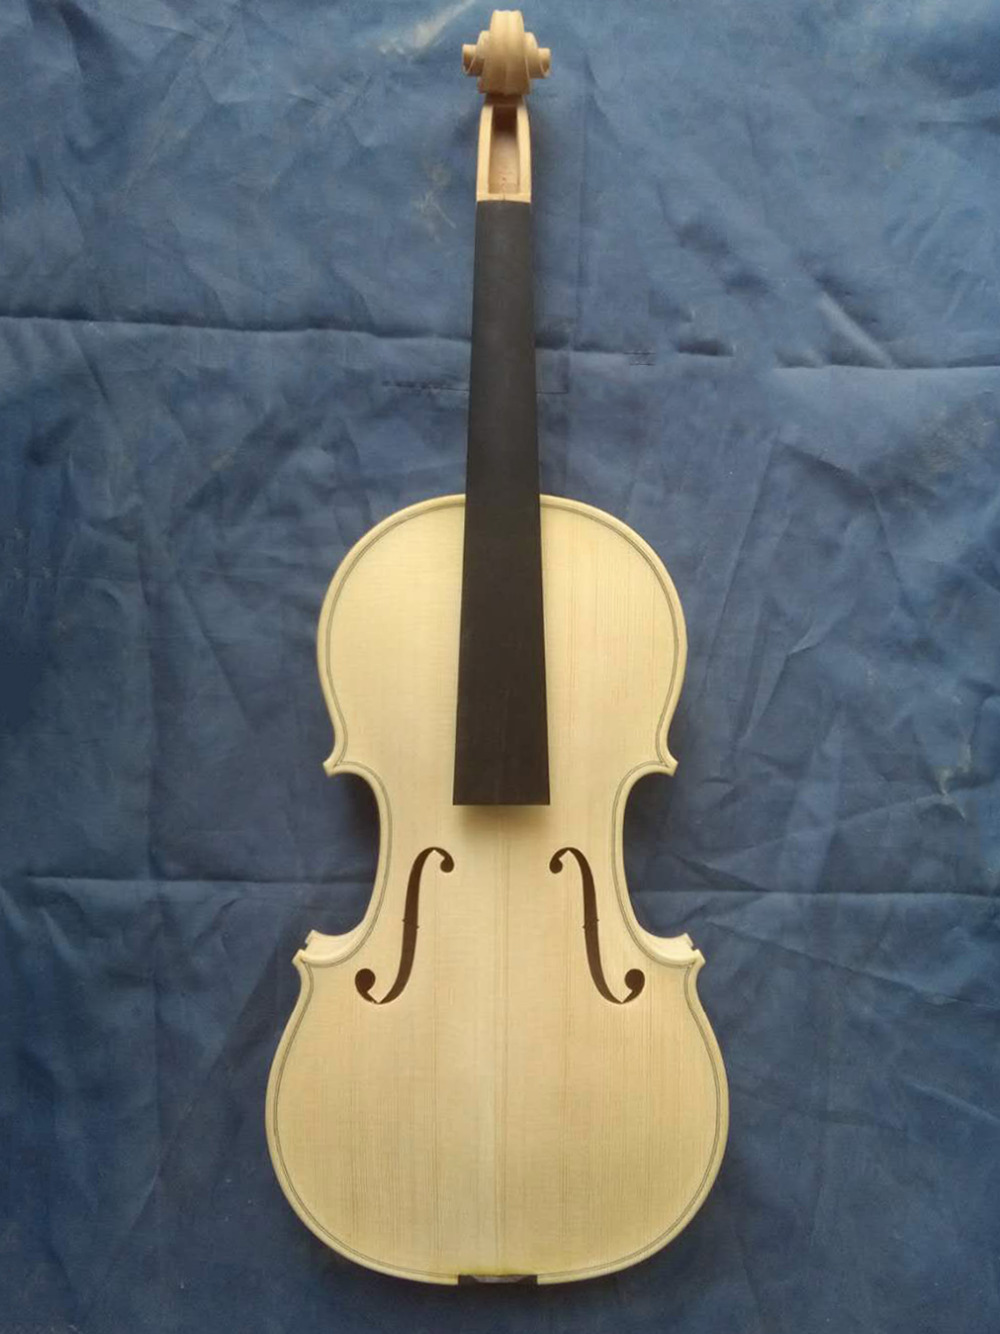 Free Shipping Pure European Wood Copy Stradivarius 100% Handmade White Violin FPVN04 with Foam Case free shipping copy stradivarius 1716 100% handmade oil varnish violin carbon fiber bow foam case fpvn04 8